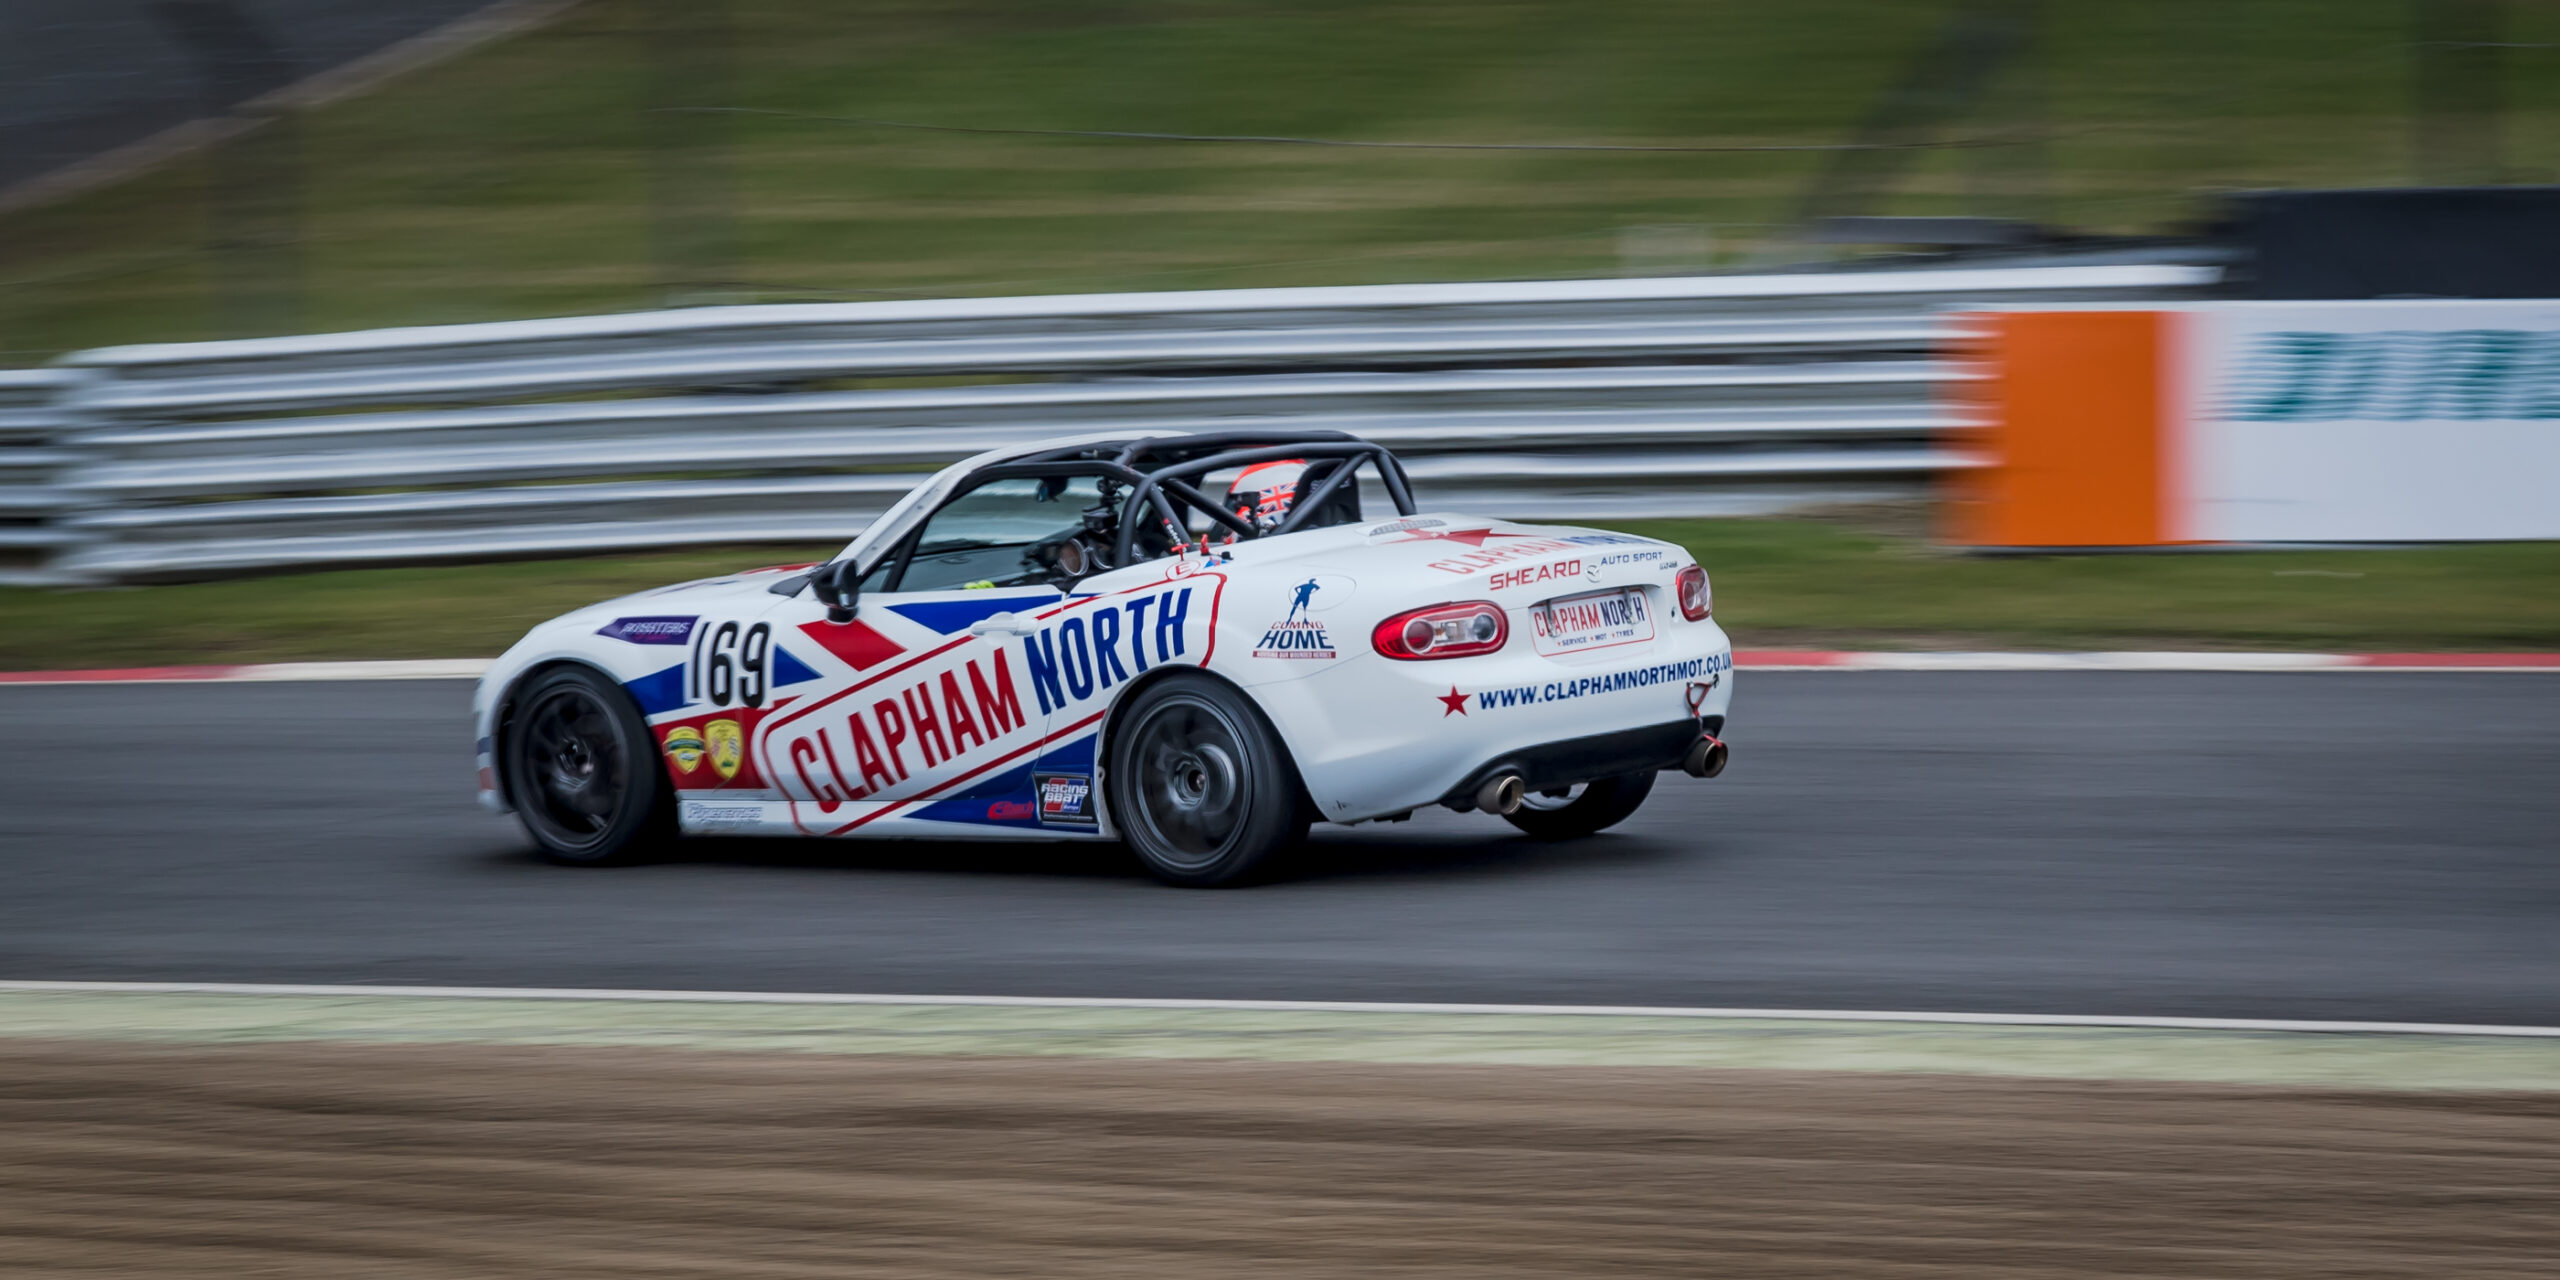 Mazda MX5 racing at Brands Hatch